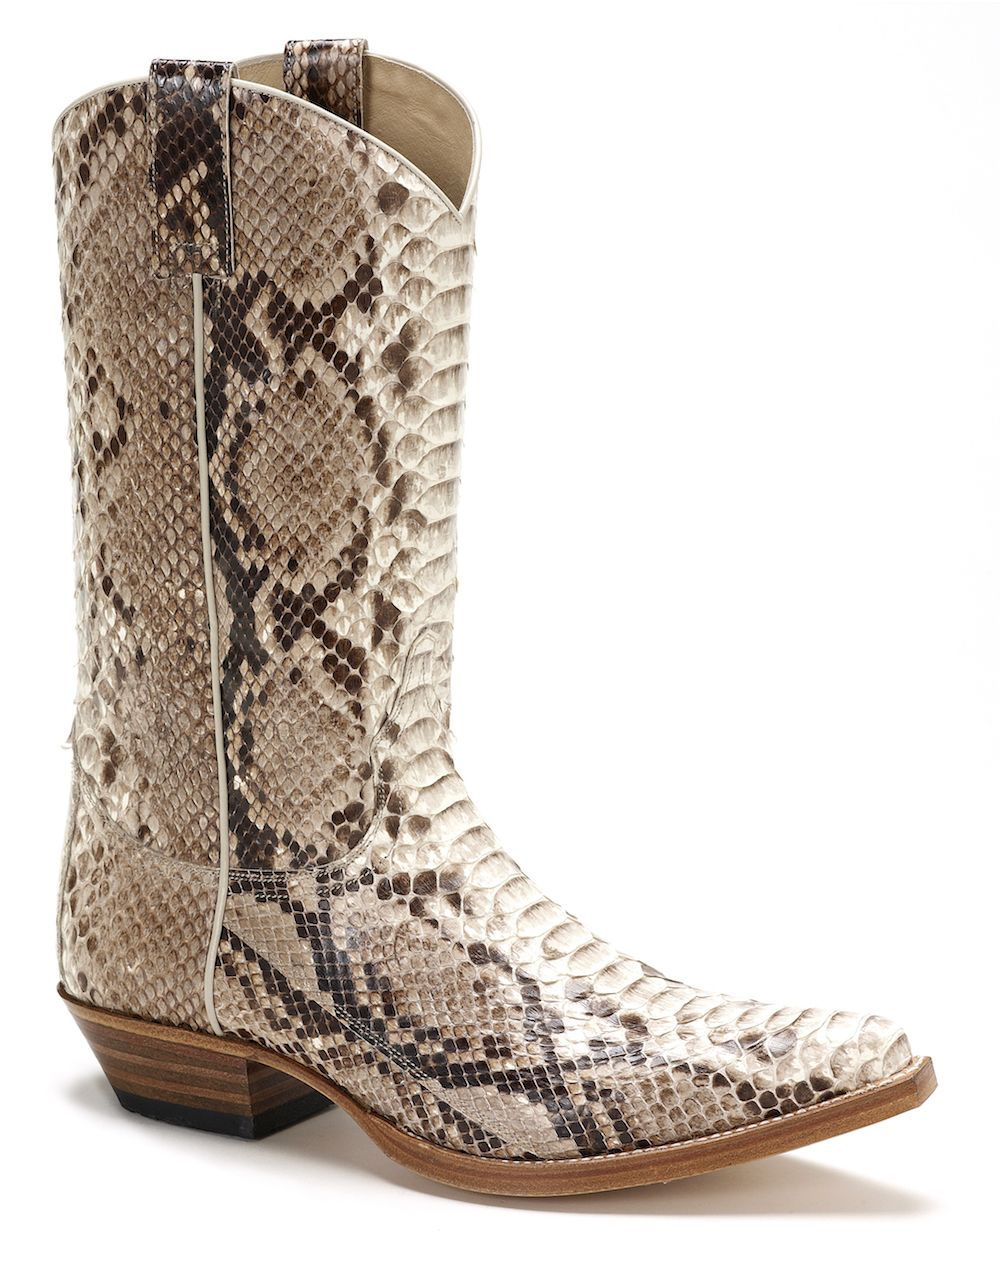 Boots, Snakeskin boots, Mens cowboy boots